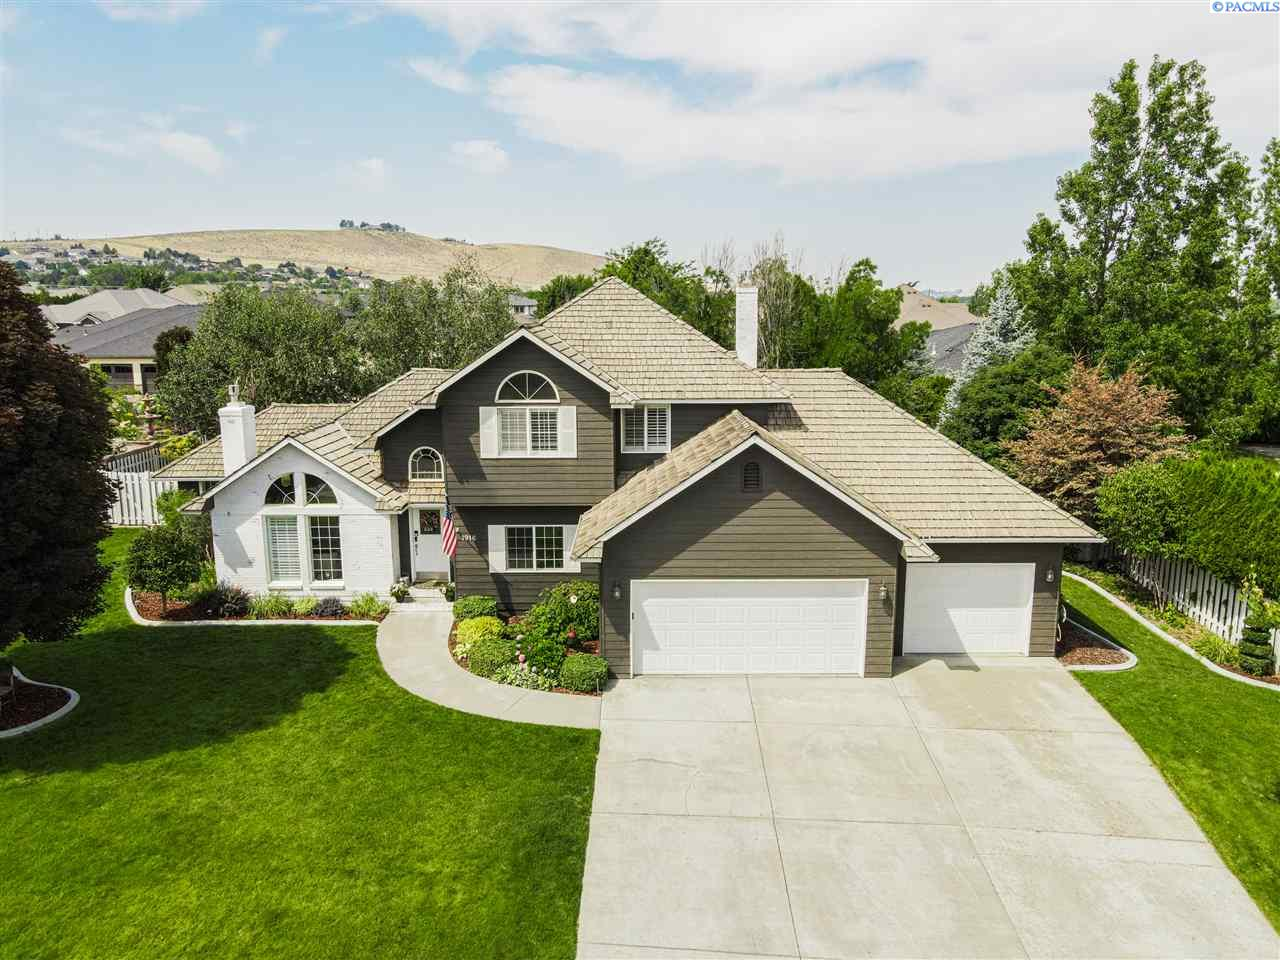 Single Family Homes for Sale at 1916 S Buchanan Street Kennewick, Washington 99338 United States